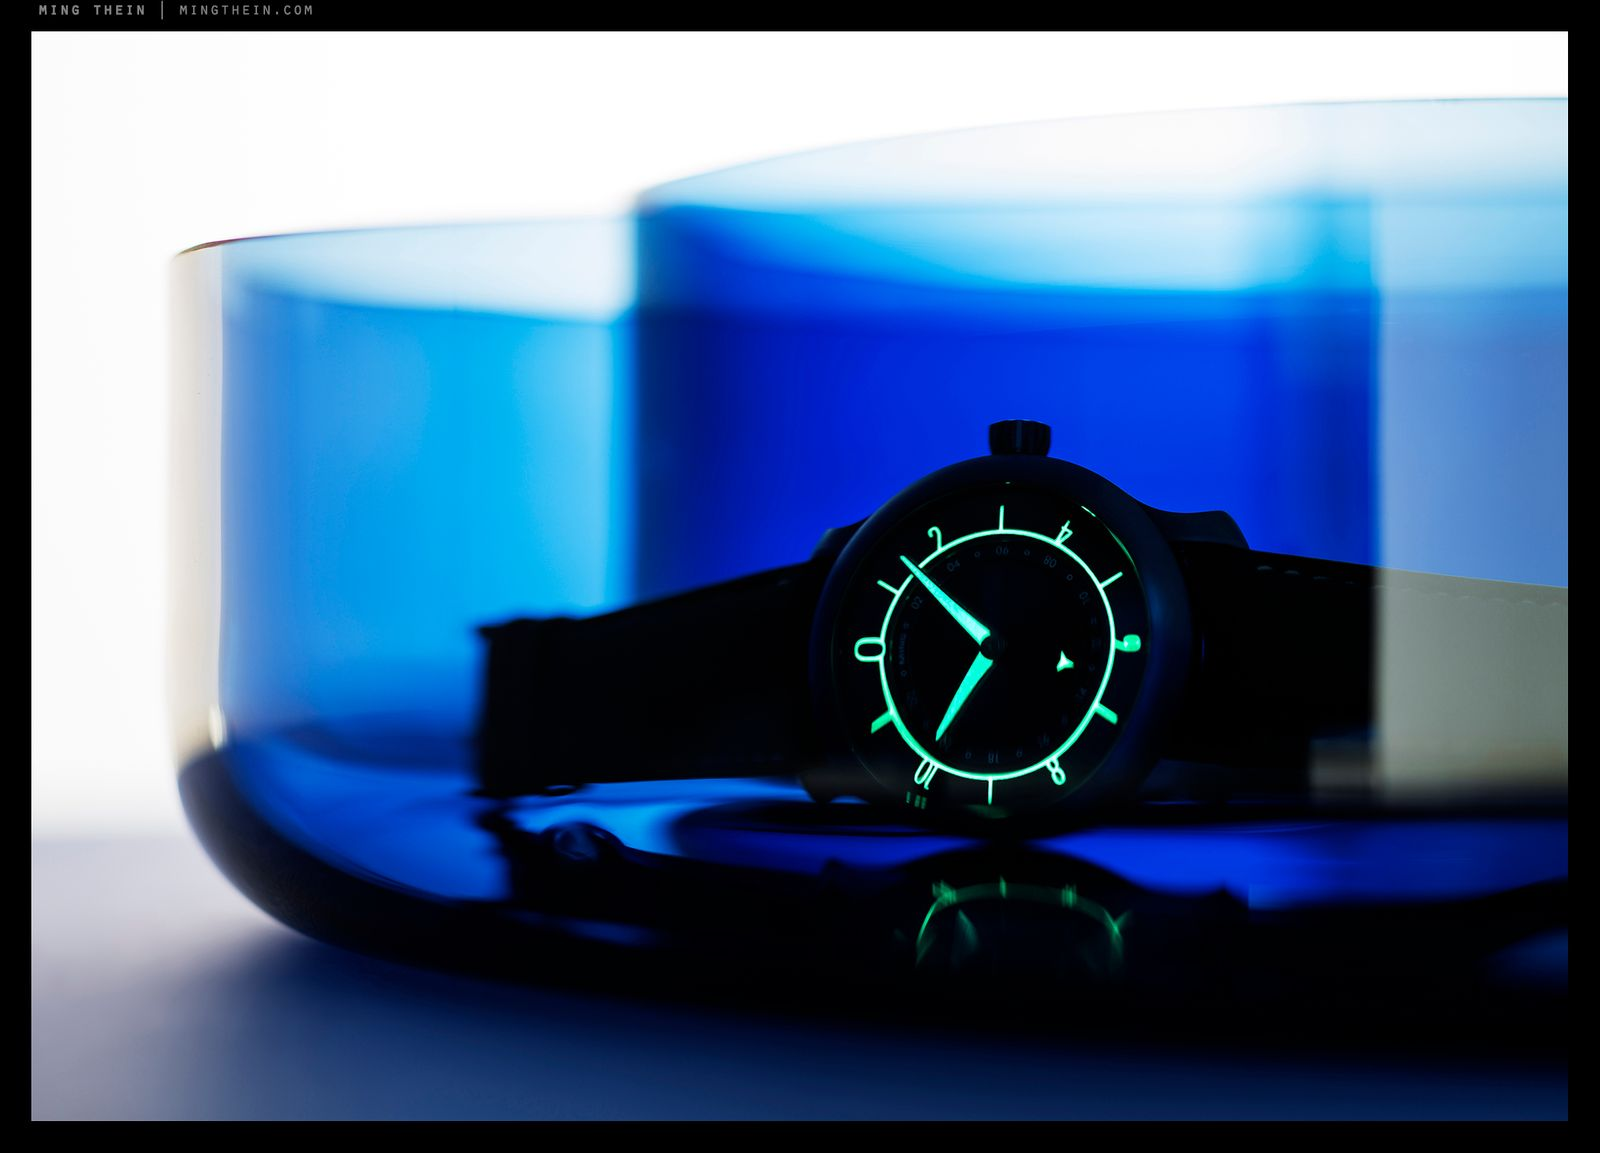 Ming 17.03 GMT lume zoom out